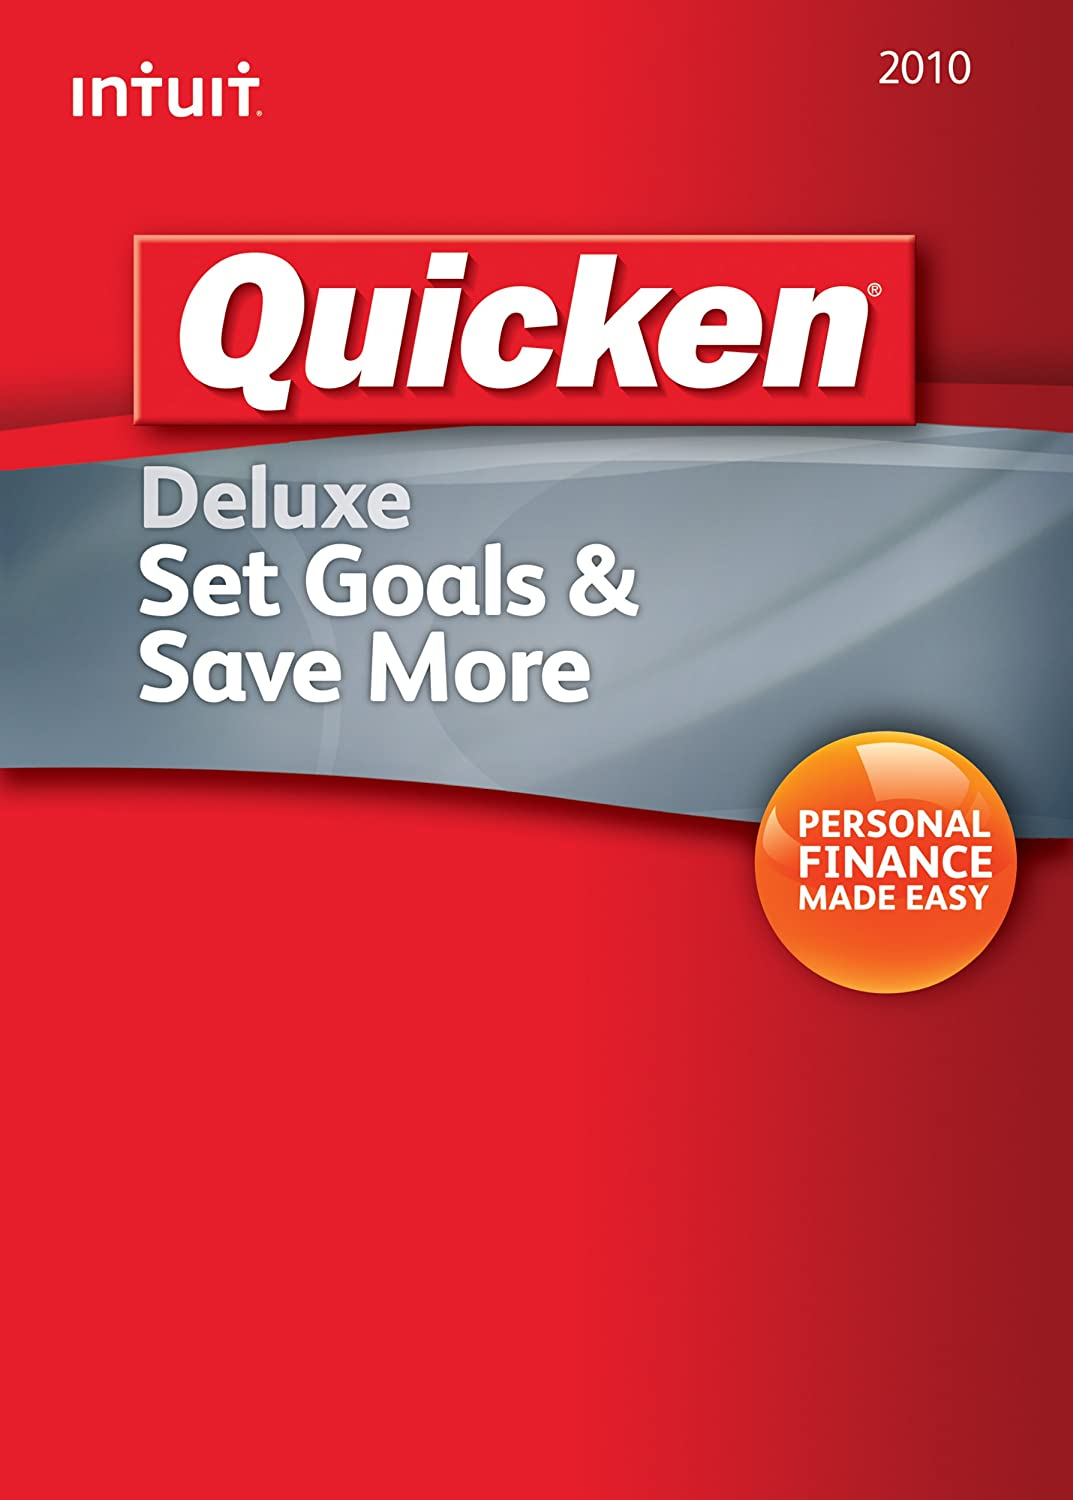 Discount intuit quicken 2010 home and business